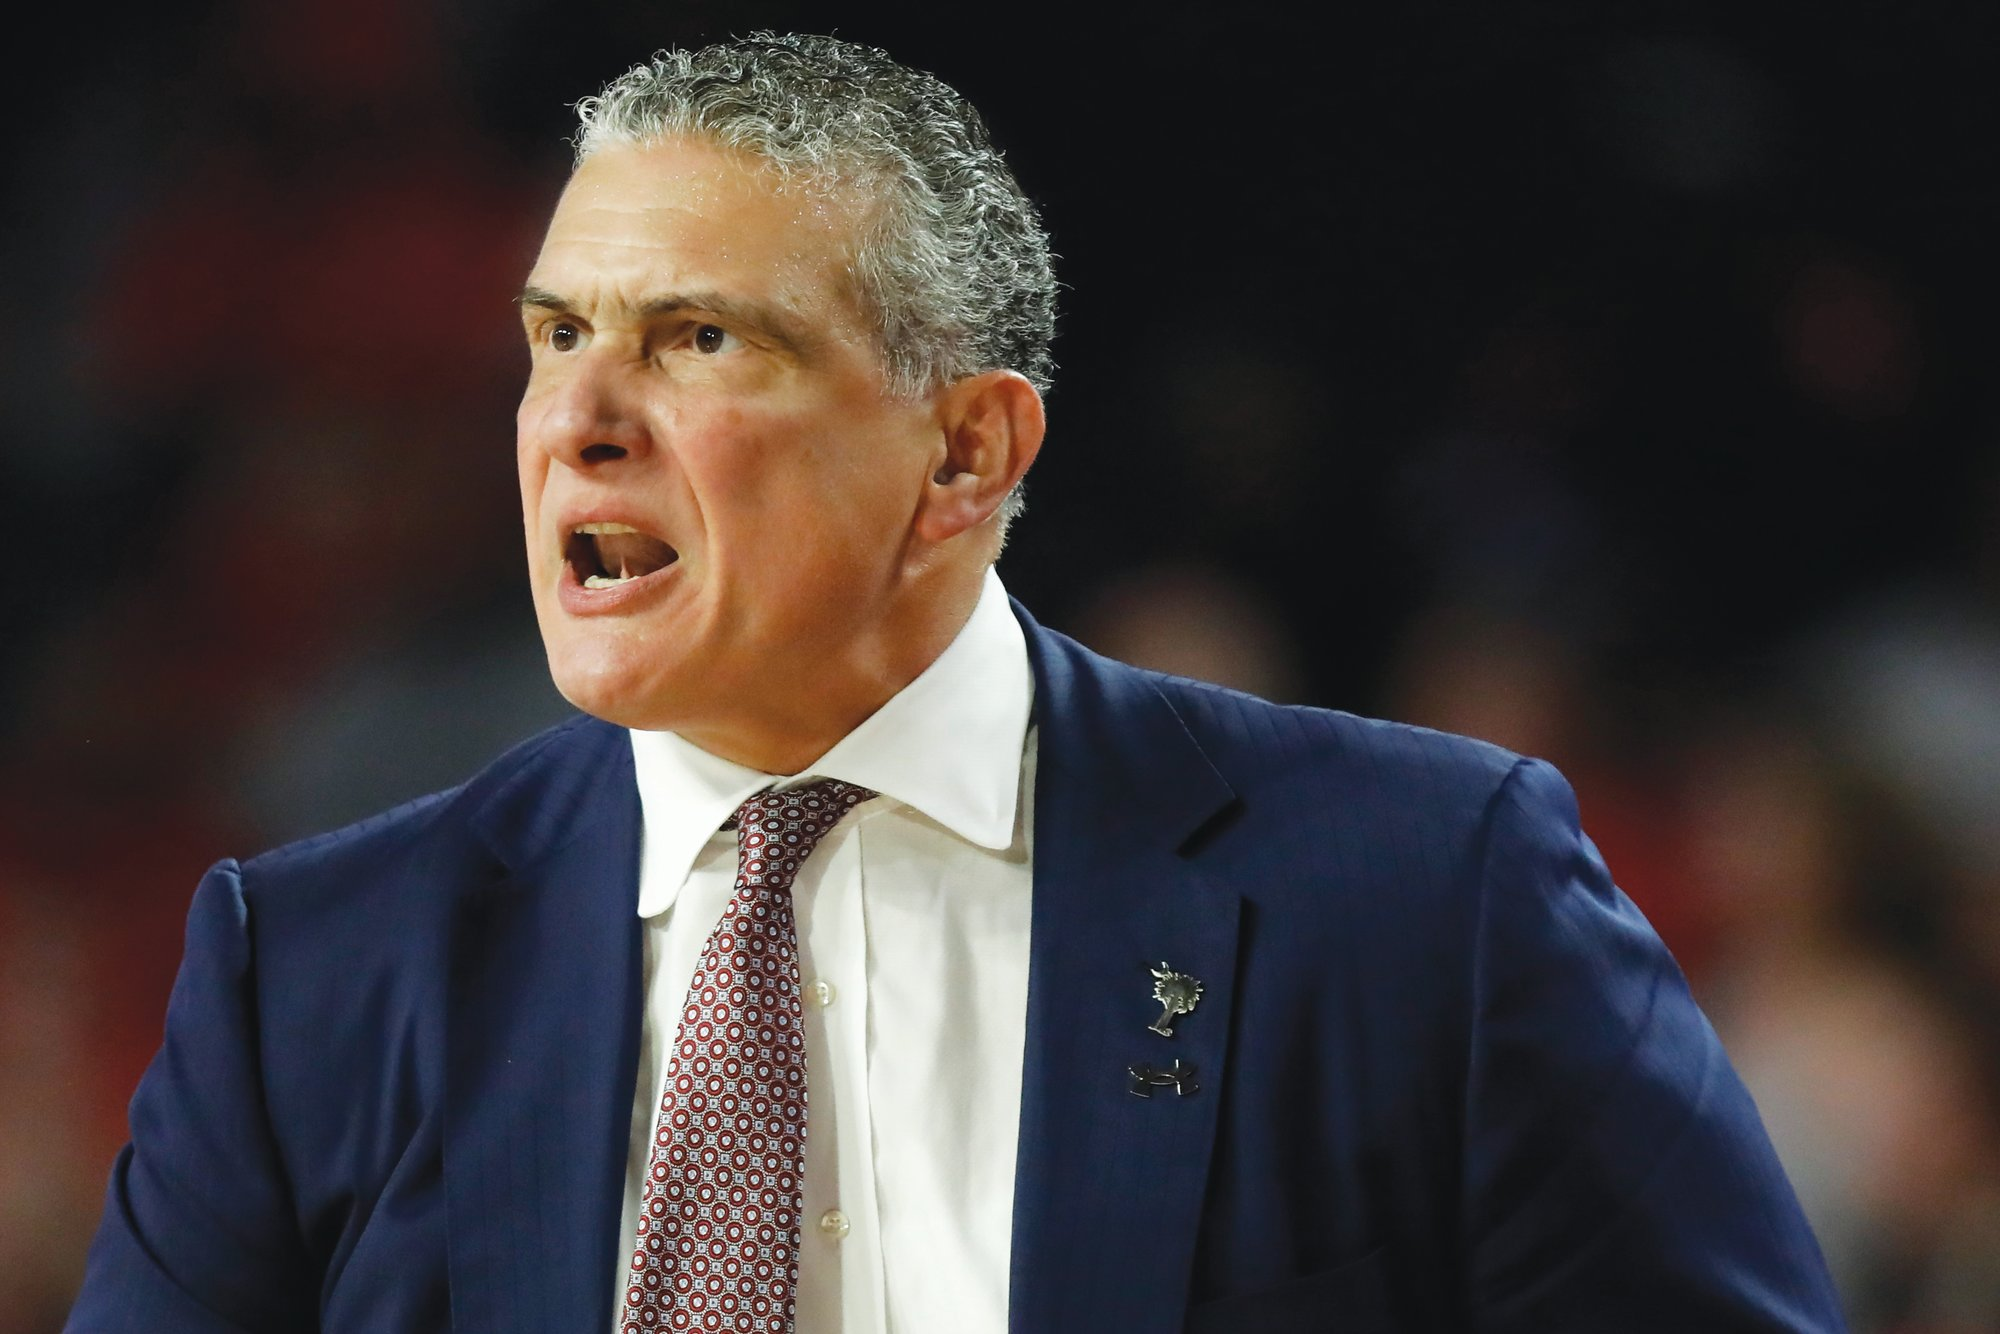 South Carolina coach Frank Martin reacts during the team's NCAA college basketball game against Georgia on Wednesday, Feb. 12, 2020, in Athens, Ga.